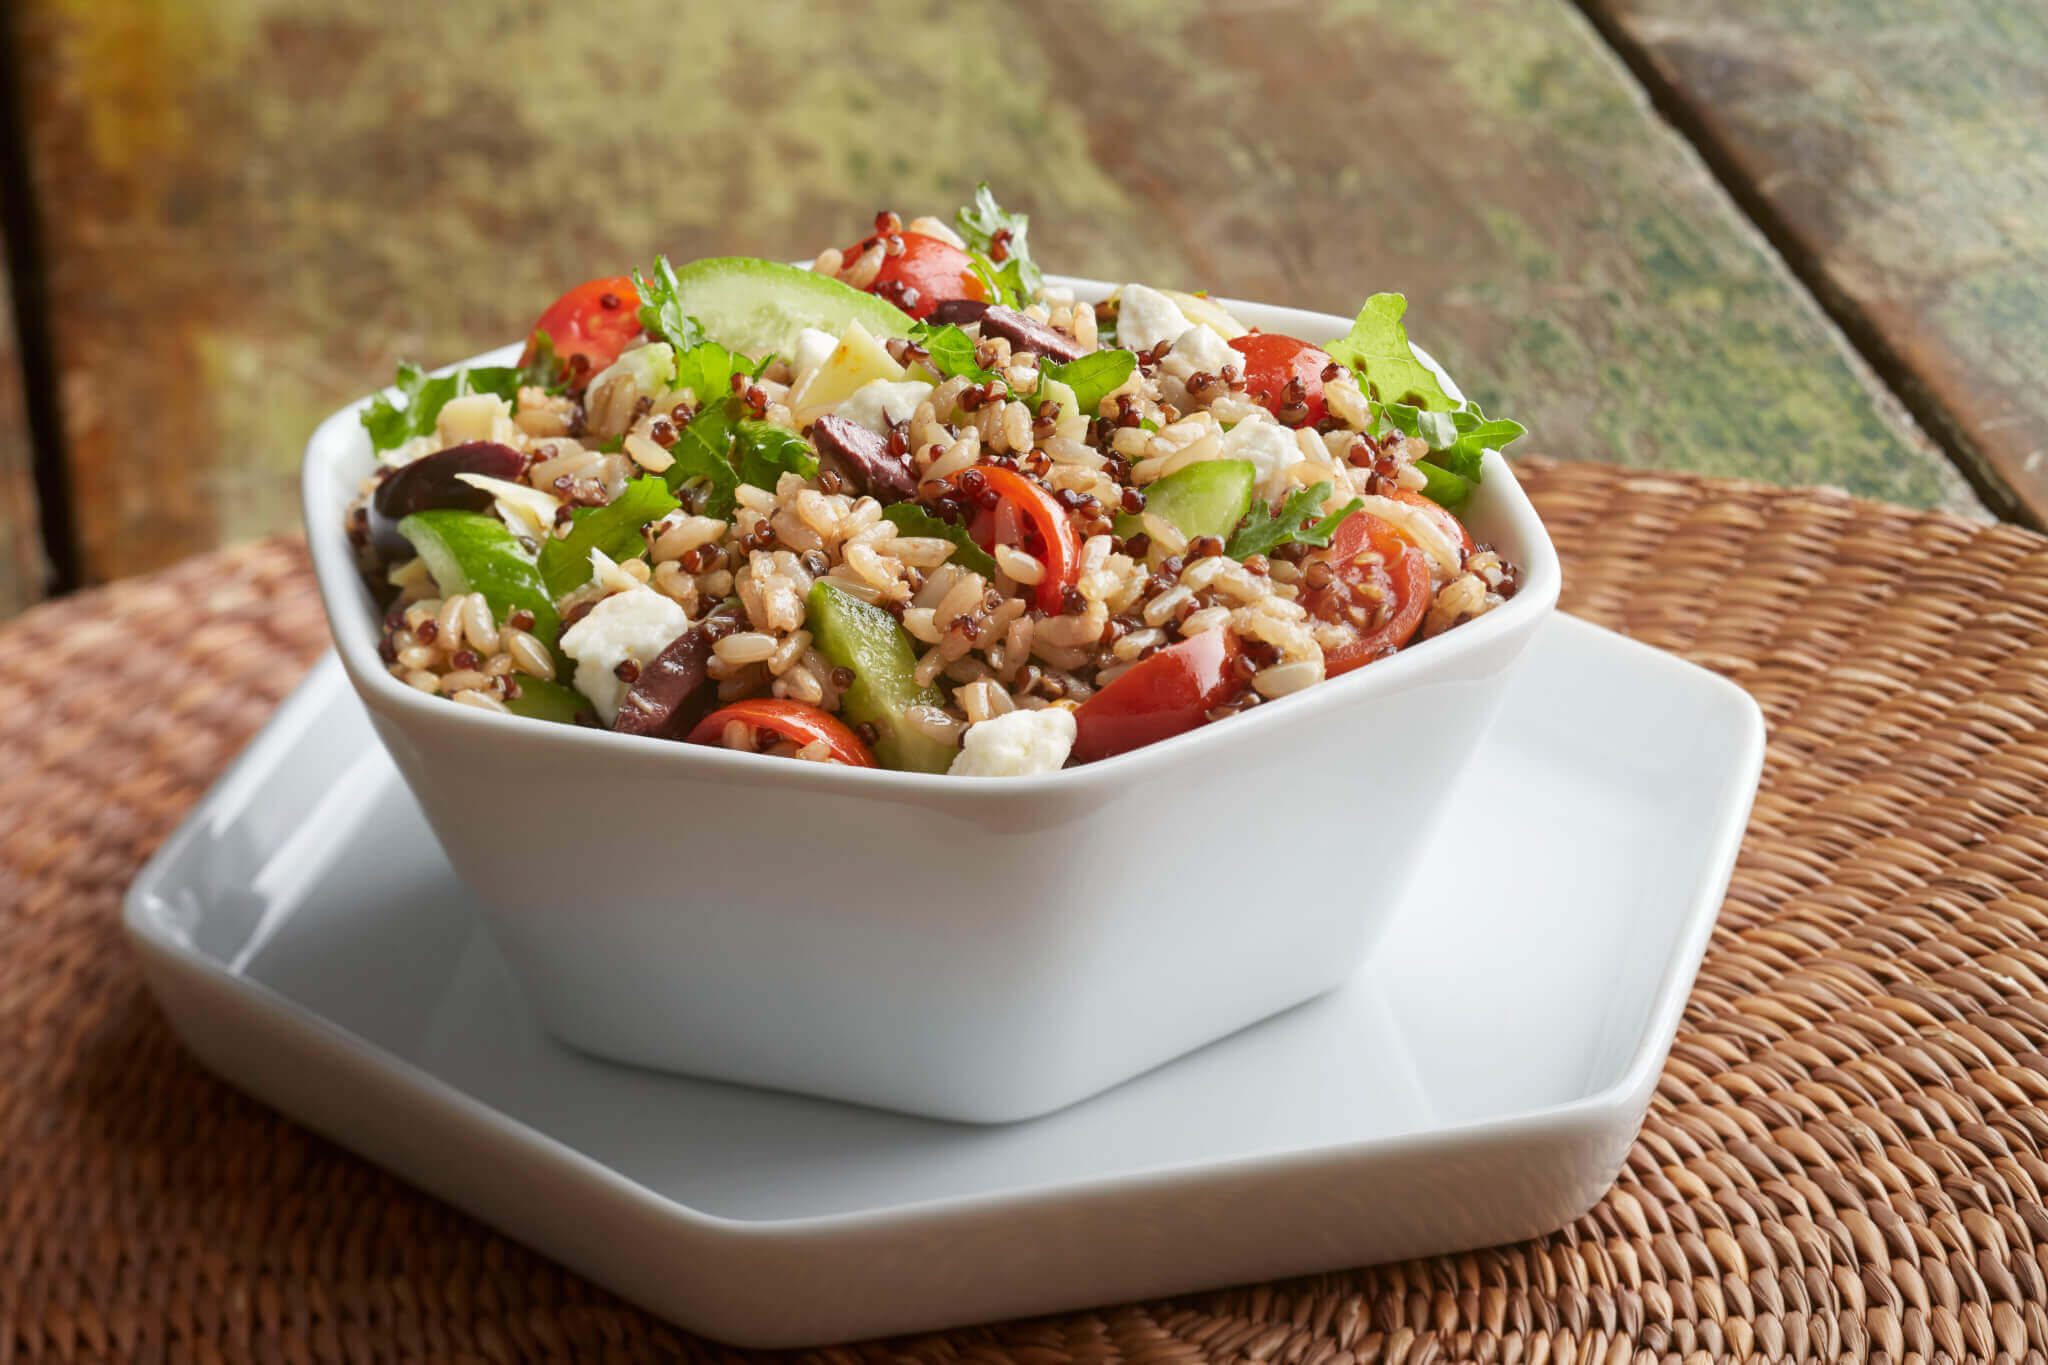 A small salad bowl filled with quinoa, chopped lettuce, cucumber, tomatoes, olives and feta cheese